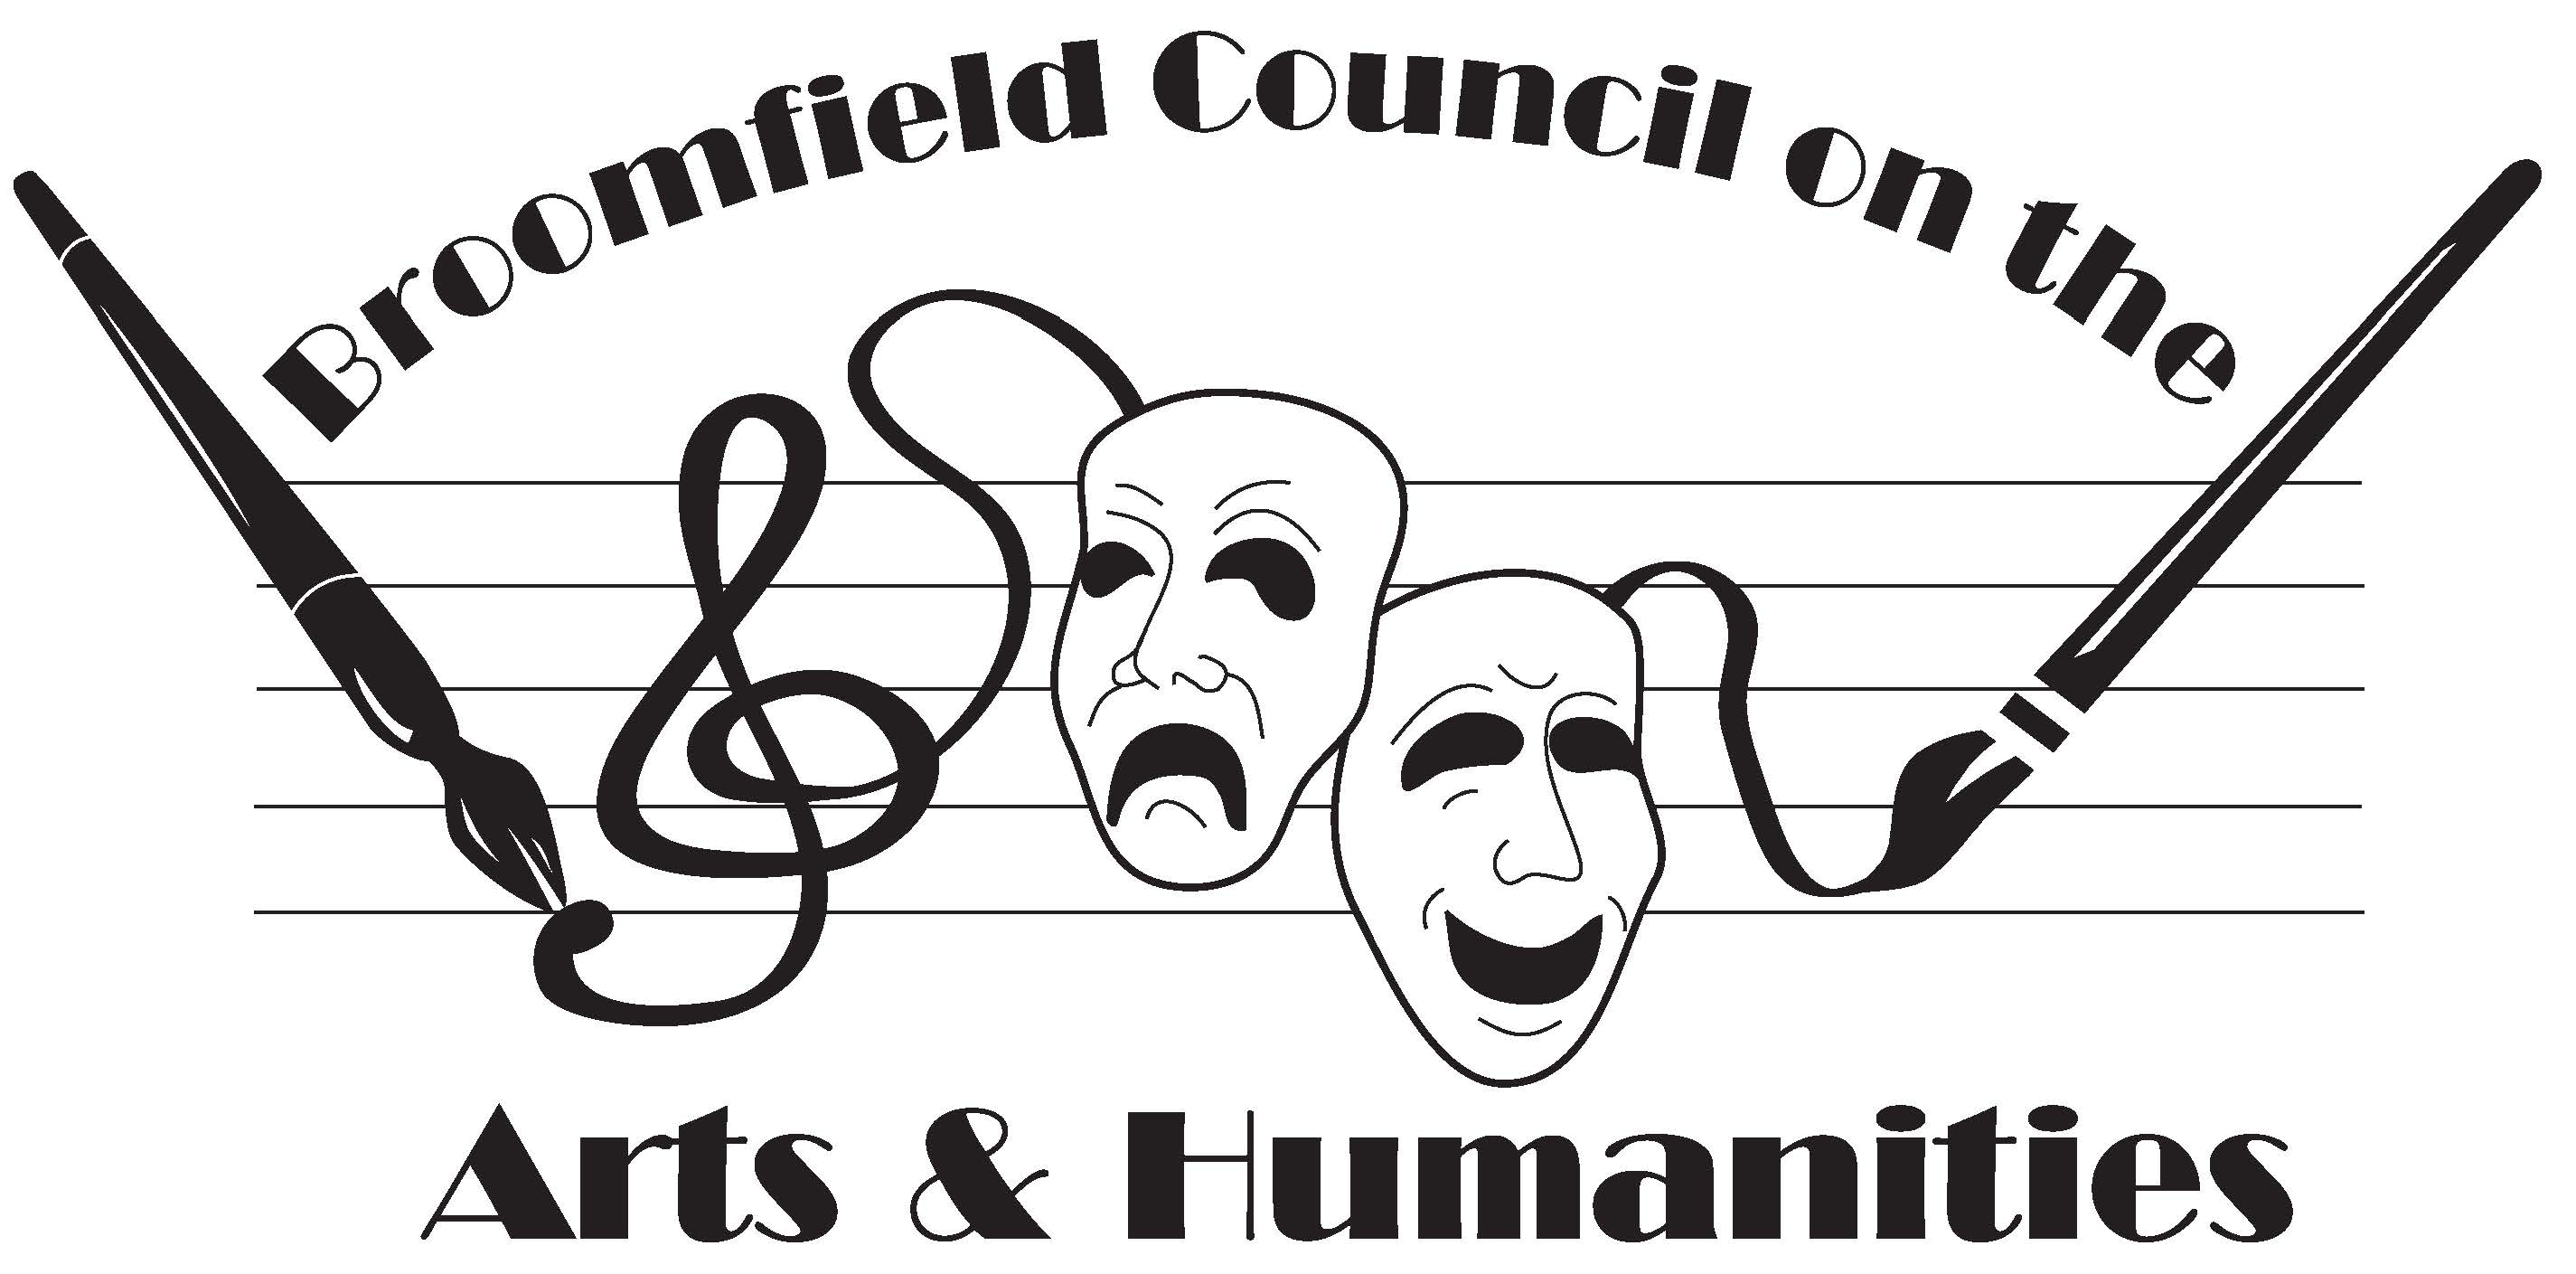 broomfield council of the arts.jpg